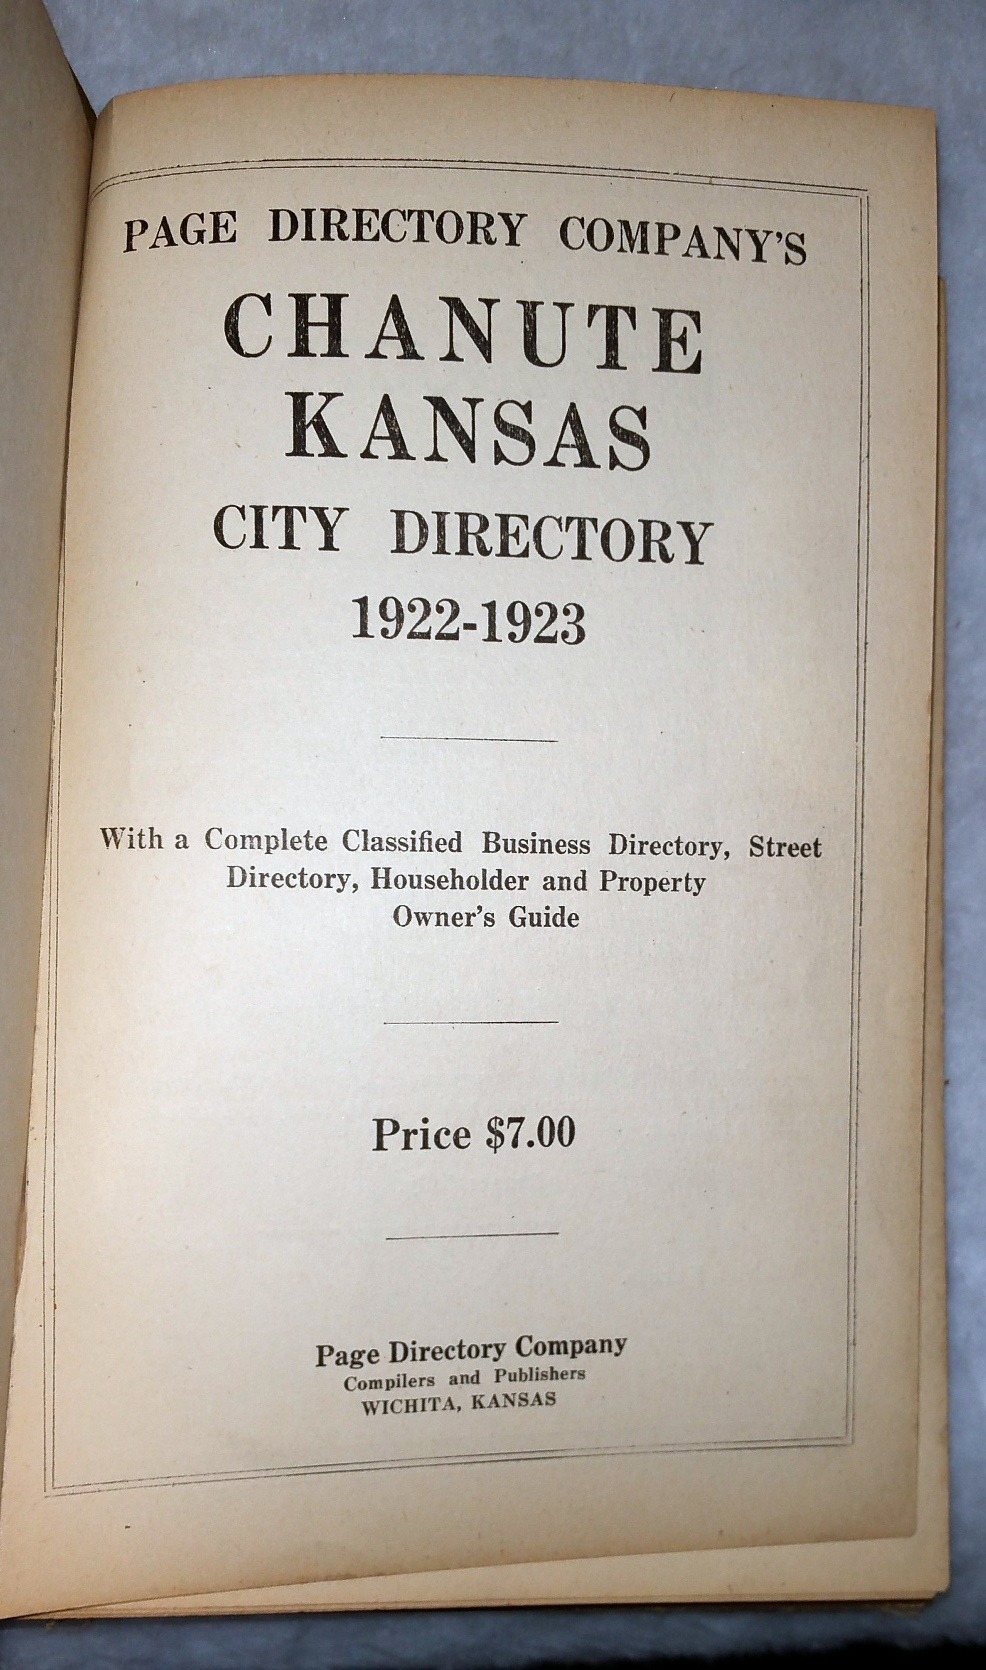 Image for Page Directory Company's Chanute Kansas, City Directory 1922-1923, With a Complete Classified Business Directory, Street Directory, Householder and Property Owner's Guide